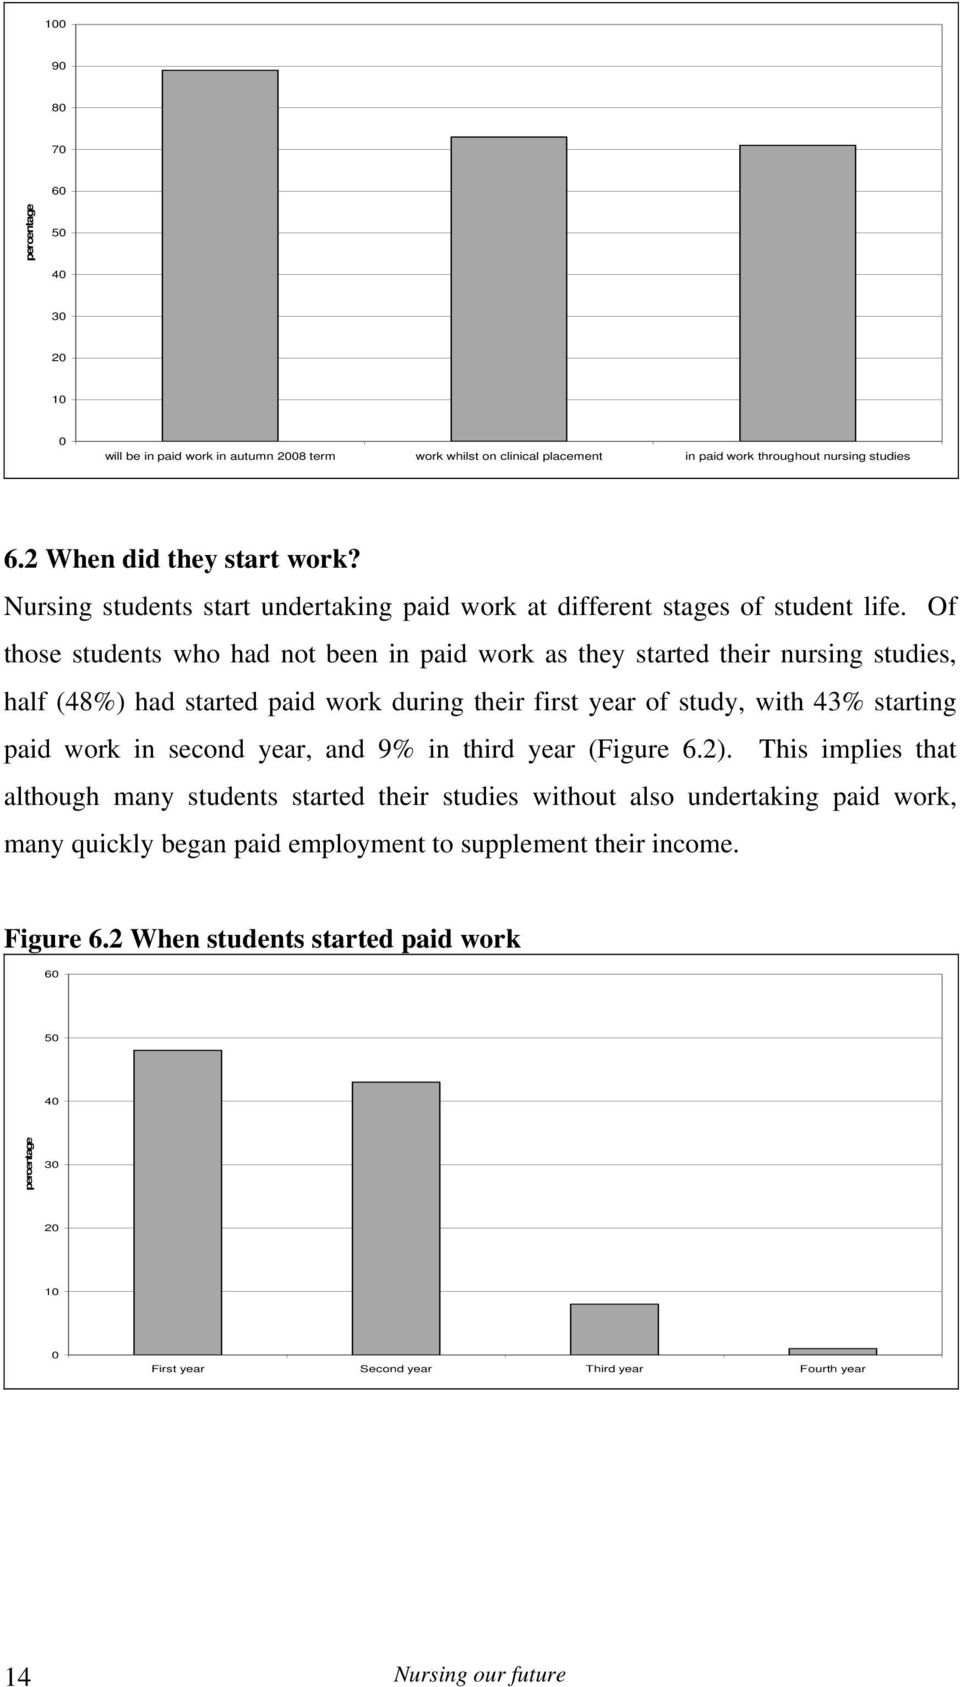 Of those students who had not been in paid work as they started their nursing studies, half (48%) had started paid work during their first year of study, with 43% starting paid work in second year,